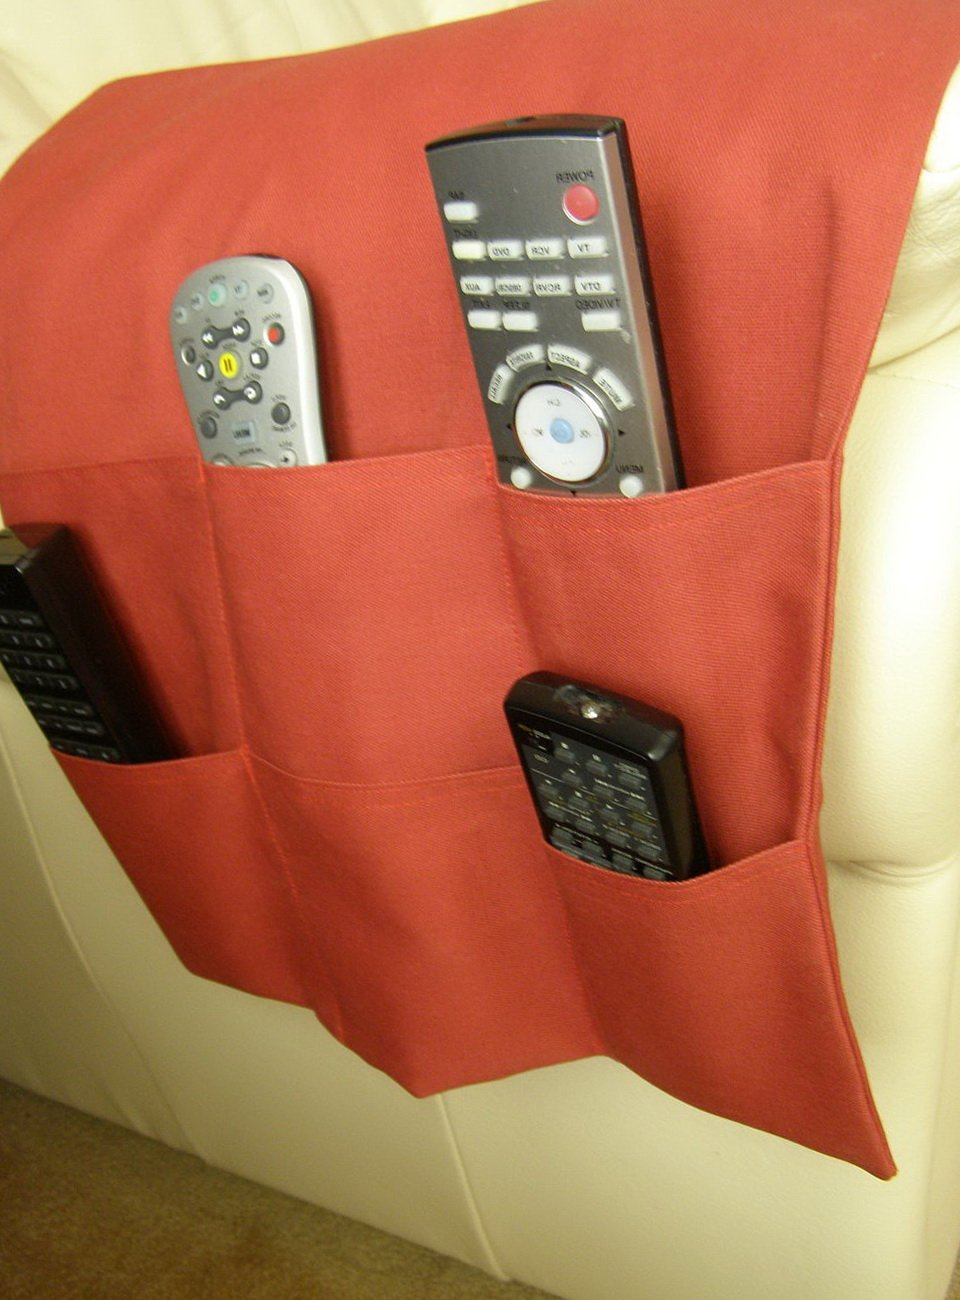 Tv Caddy Remote Control Organizer Home Design Idea How To Match Thermofoil Cabinet Doors